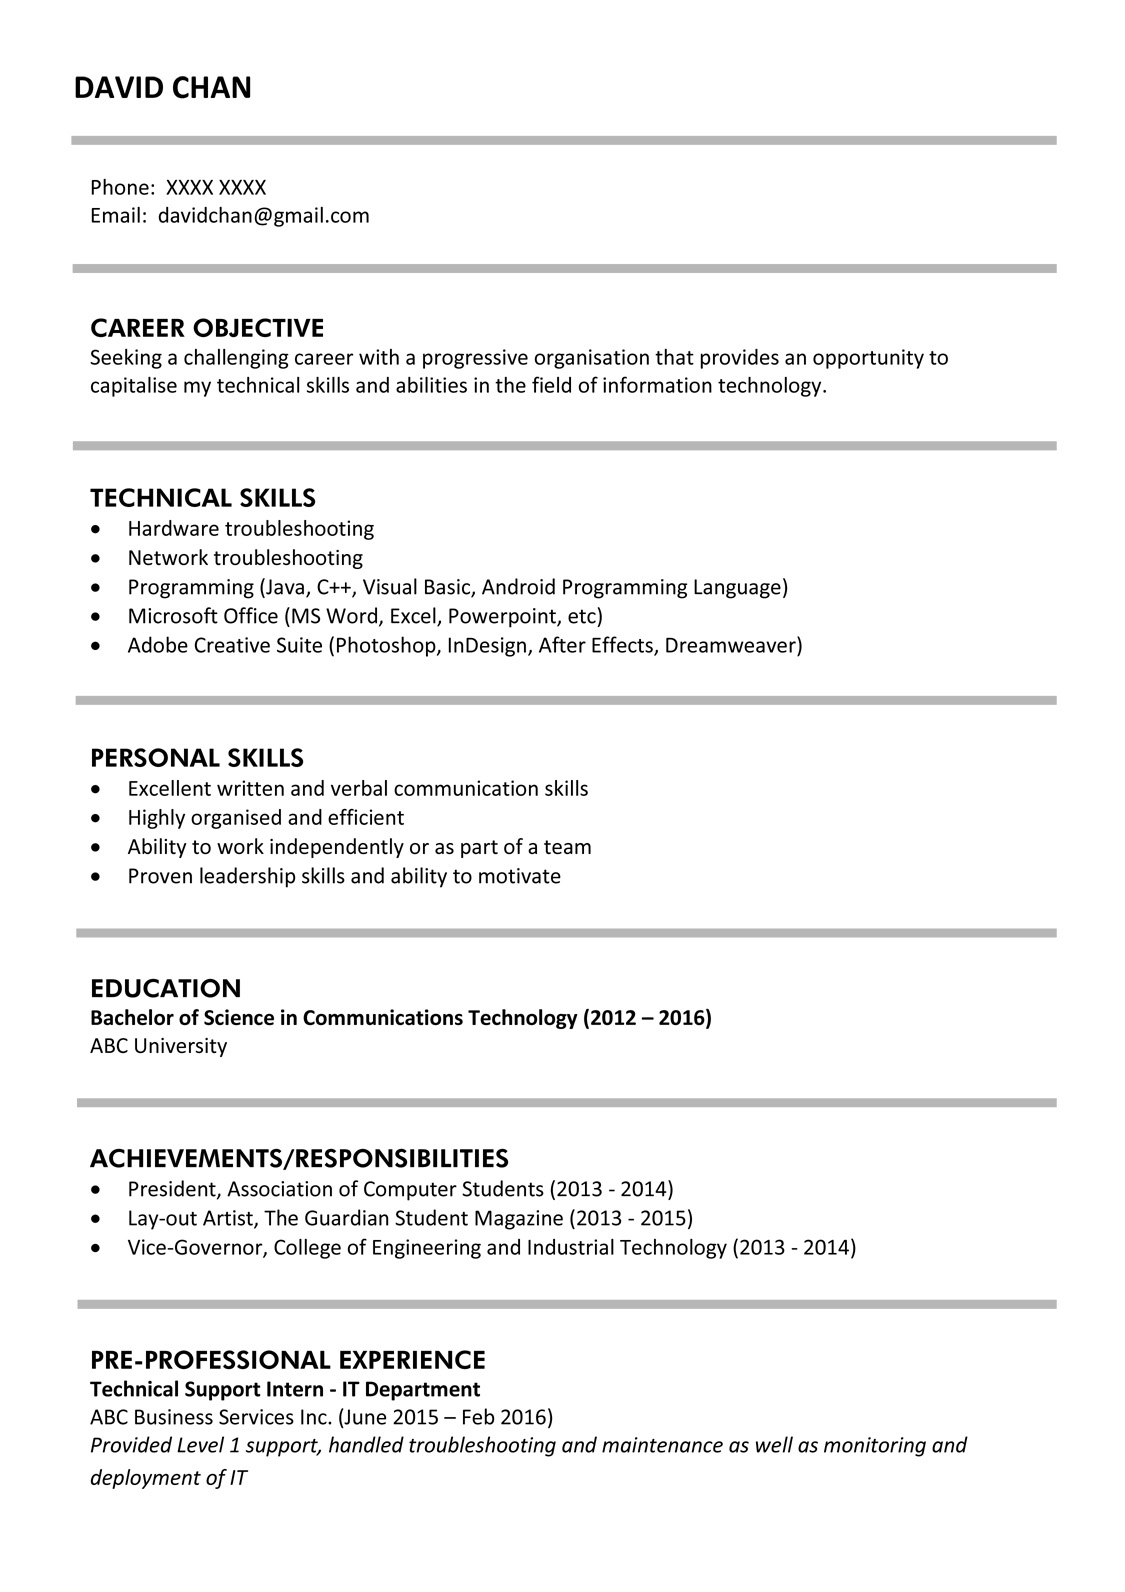 free resume critique canada entry level resume